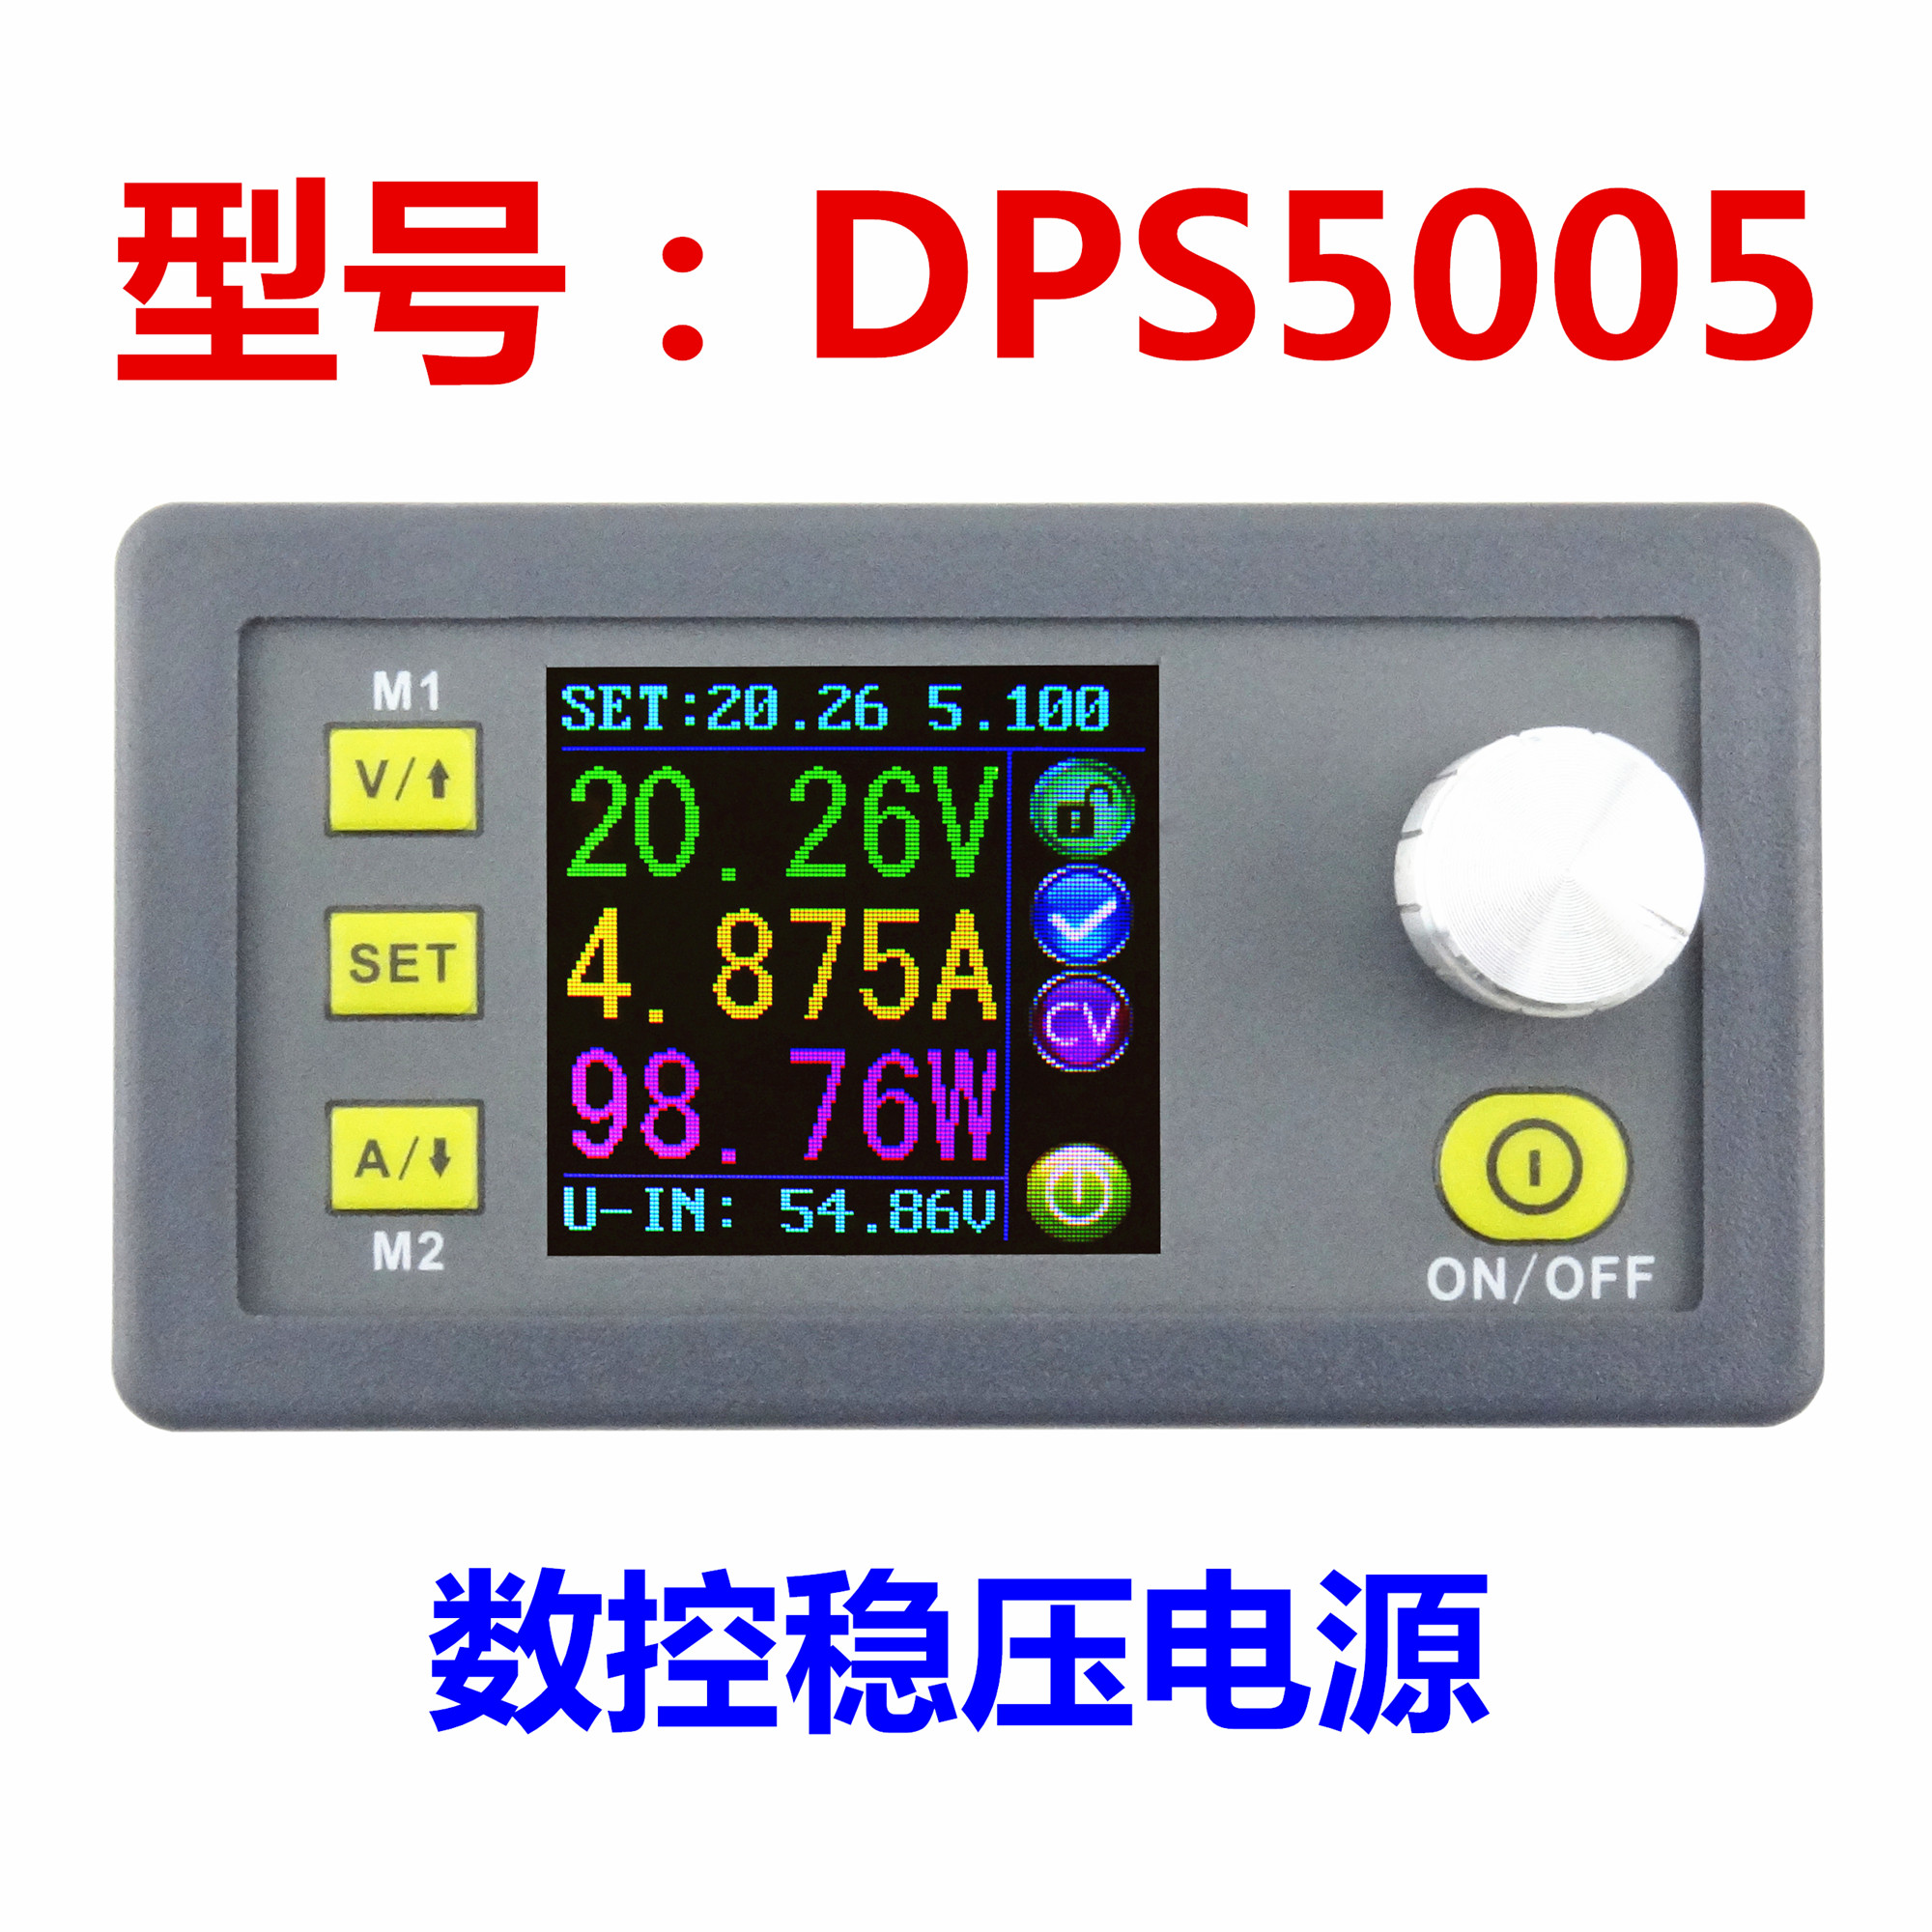 DPS Series Integrated Voltage Amperometer with DC Regulating Power Supply Step-down ModuleDPS Series Integrated Voltage Amperometer with DC Regulating Power Supply Step-down Module